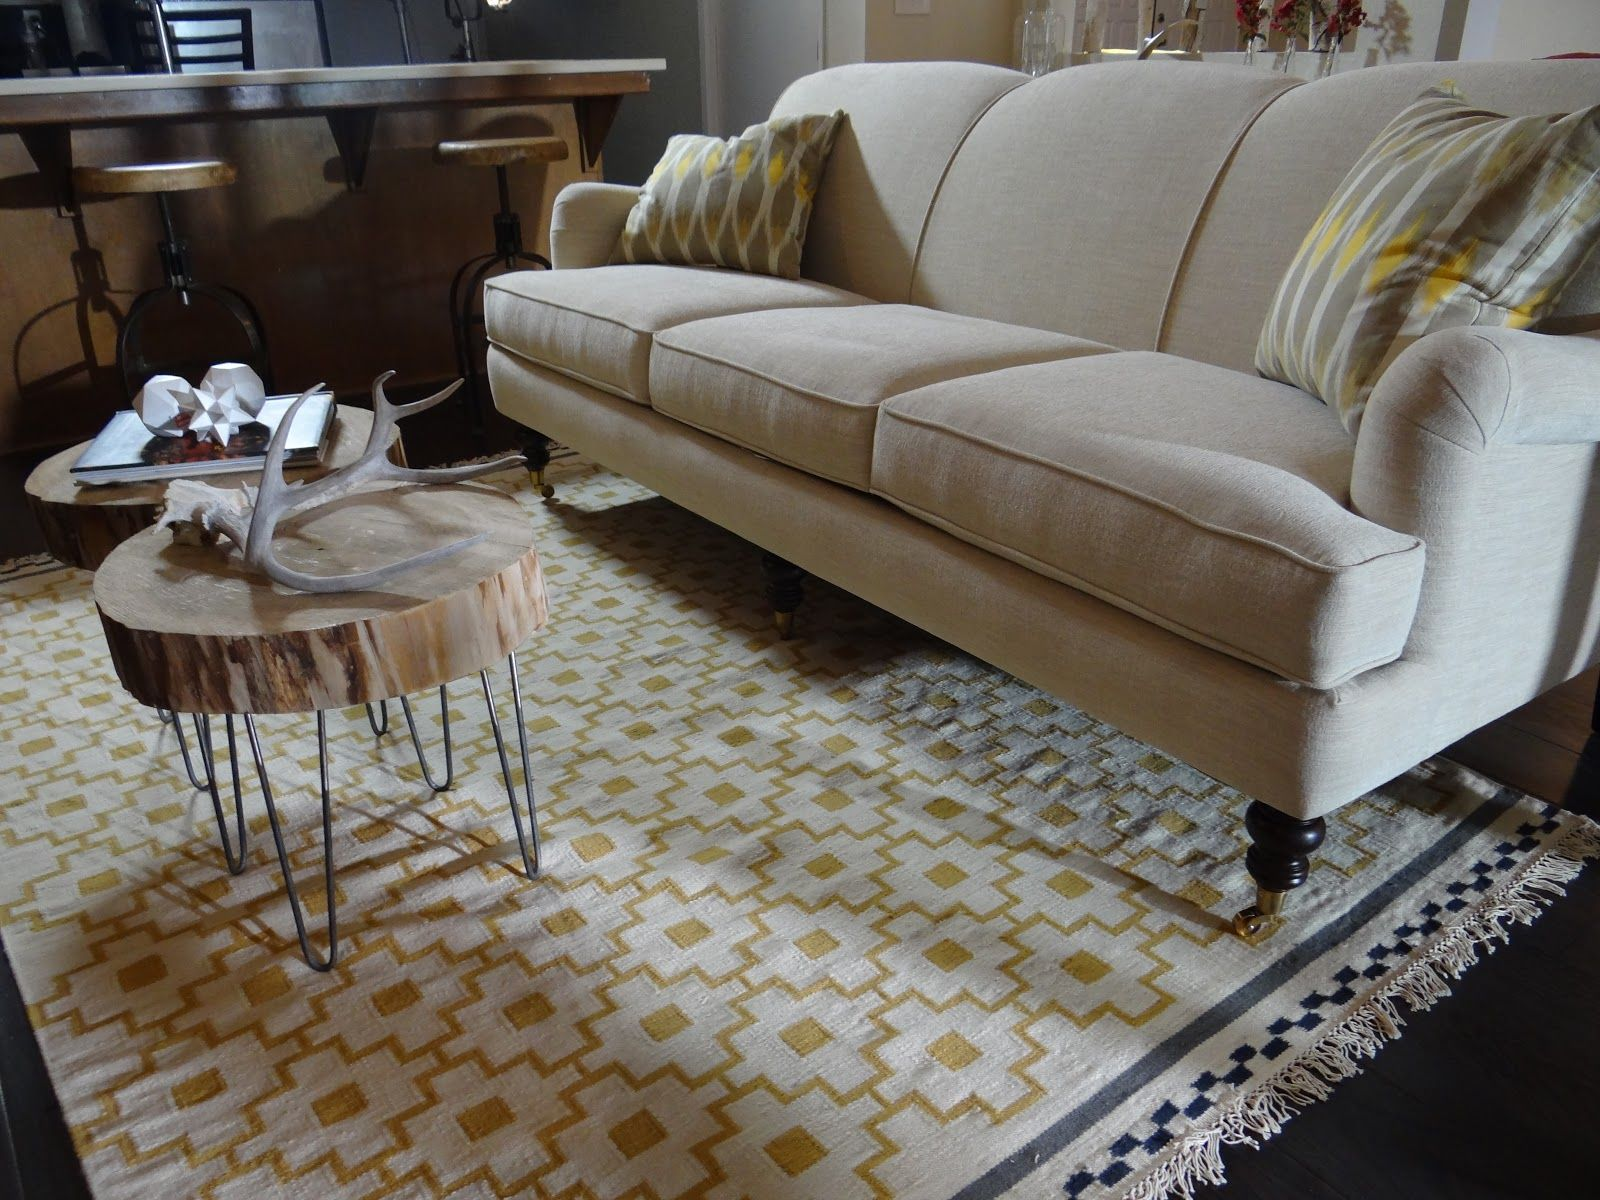 Restoration Hardware Barclay copycat Sofa available in any size and